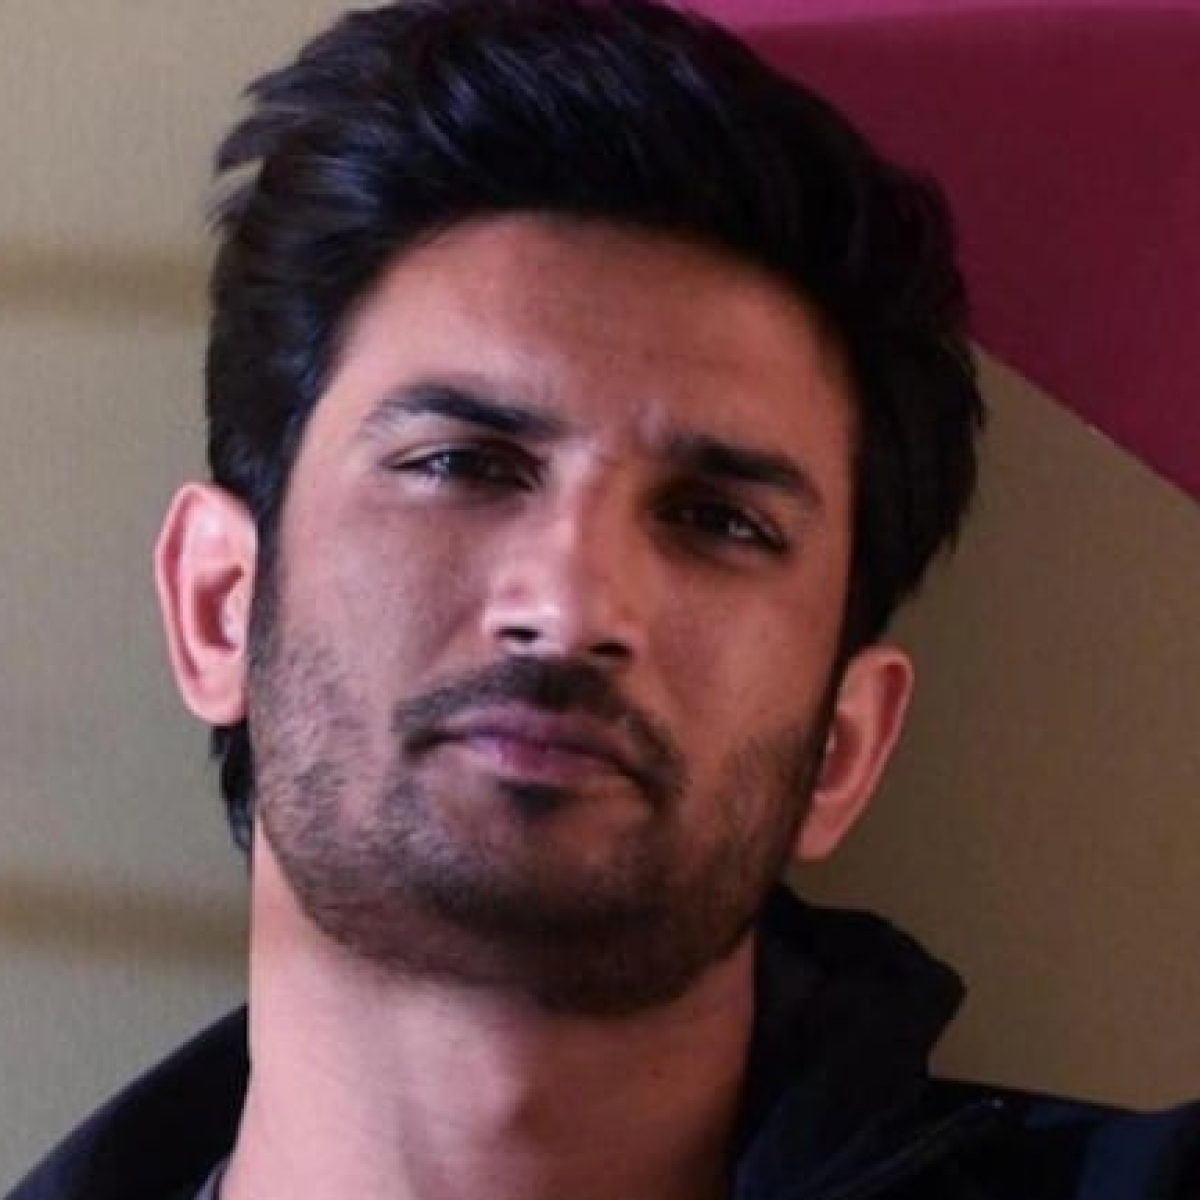 Mumbai police's probe, Rhea's arrest, CBI statement and more: Here's the complete timeline of investigation in Sushant Singh Rajput death case